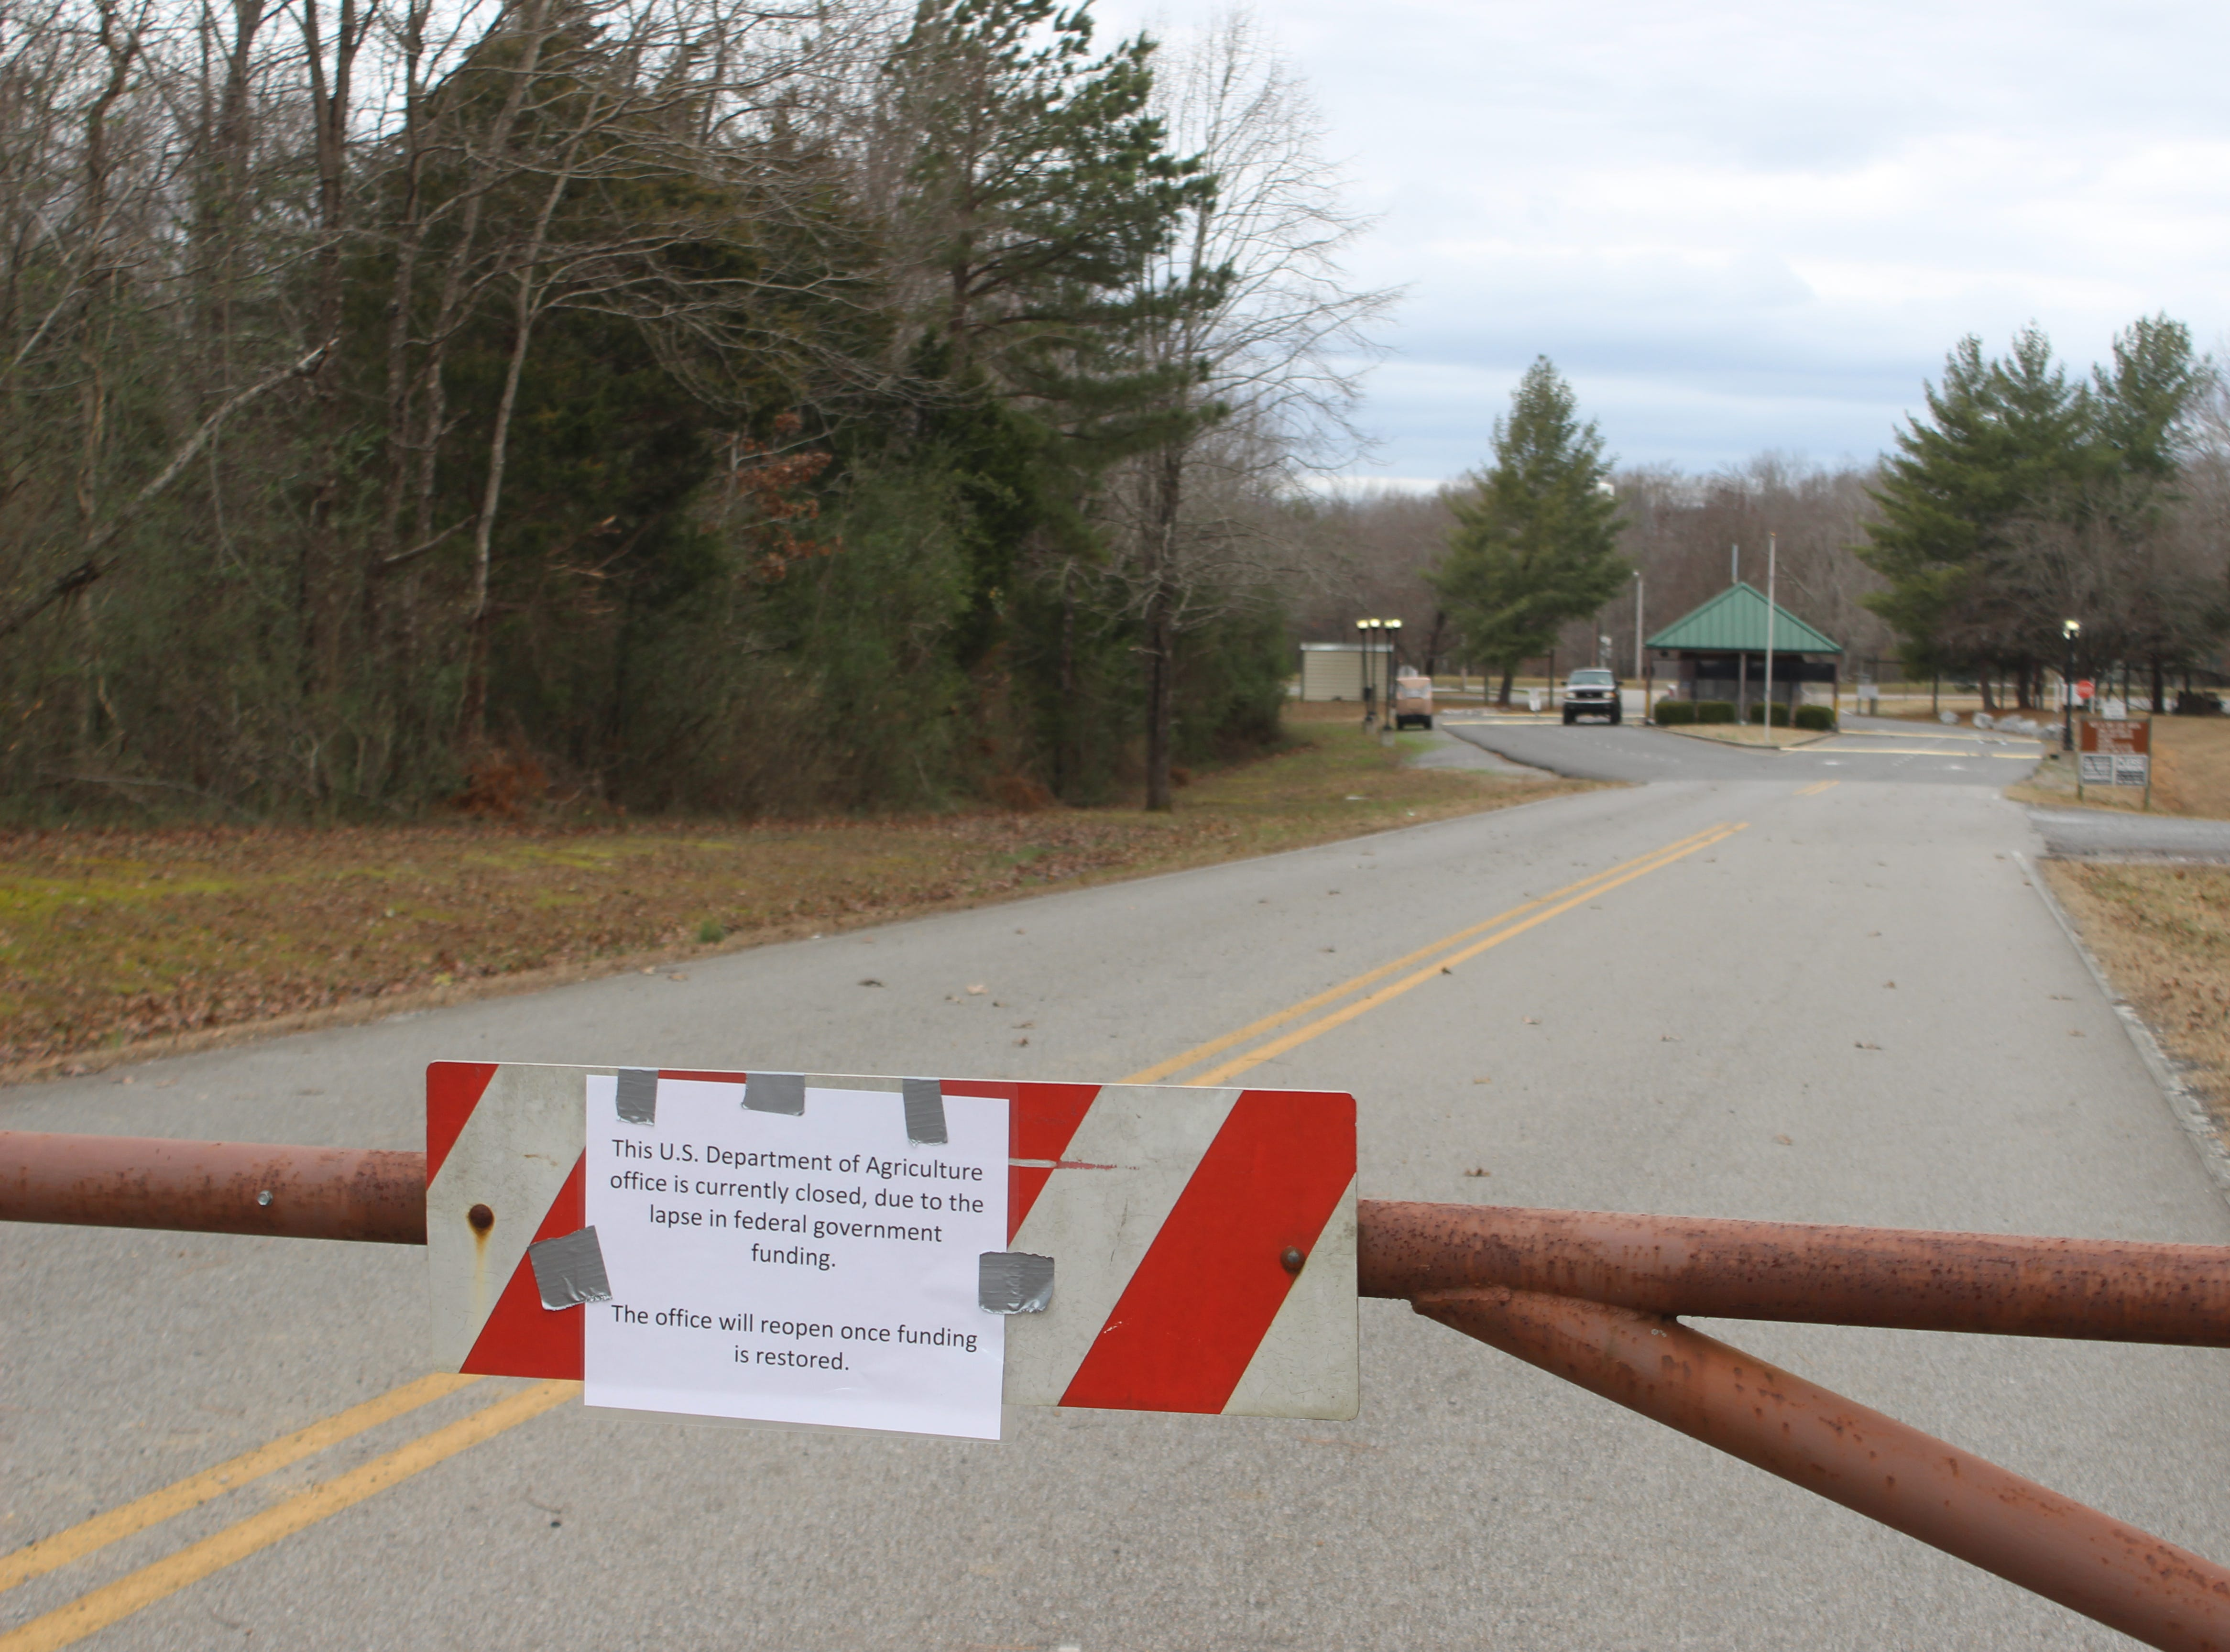 A locked gate with a sign announcing the closure greets visitors at Piney campground at Land of the Lakes National Recreation Area as the government shutdown rolls into its third week.